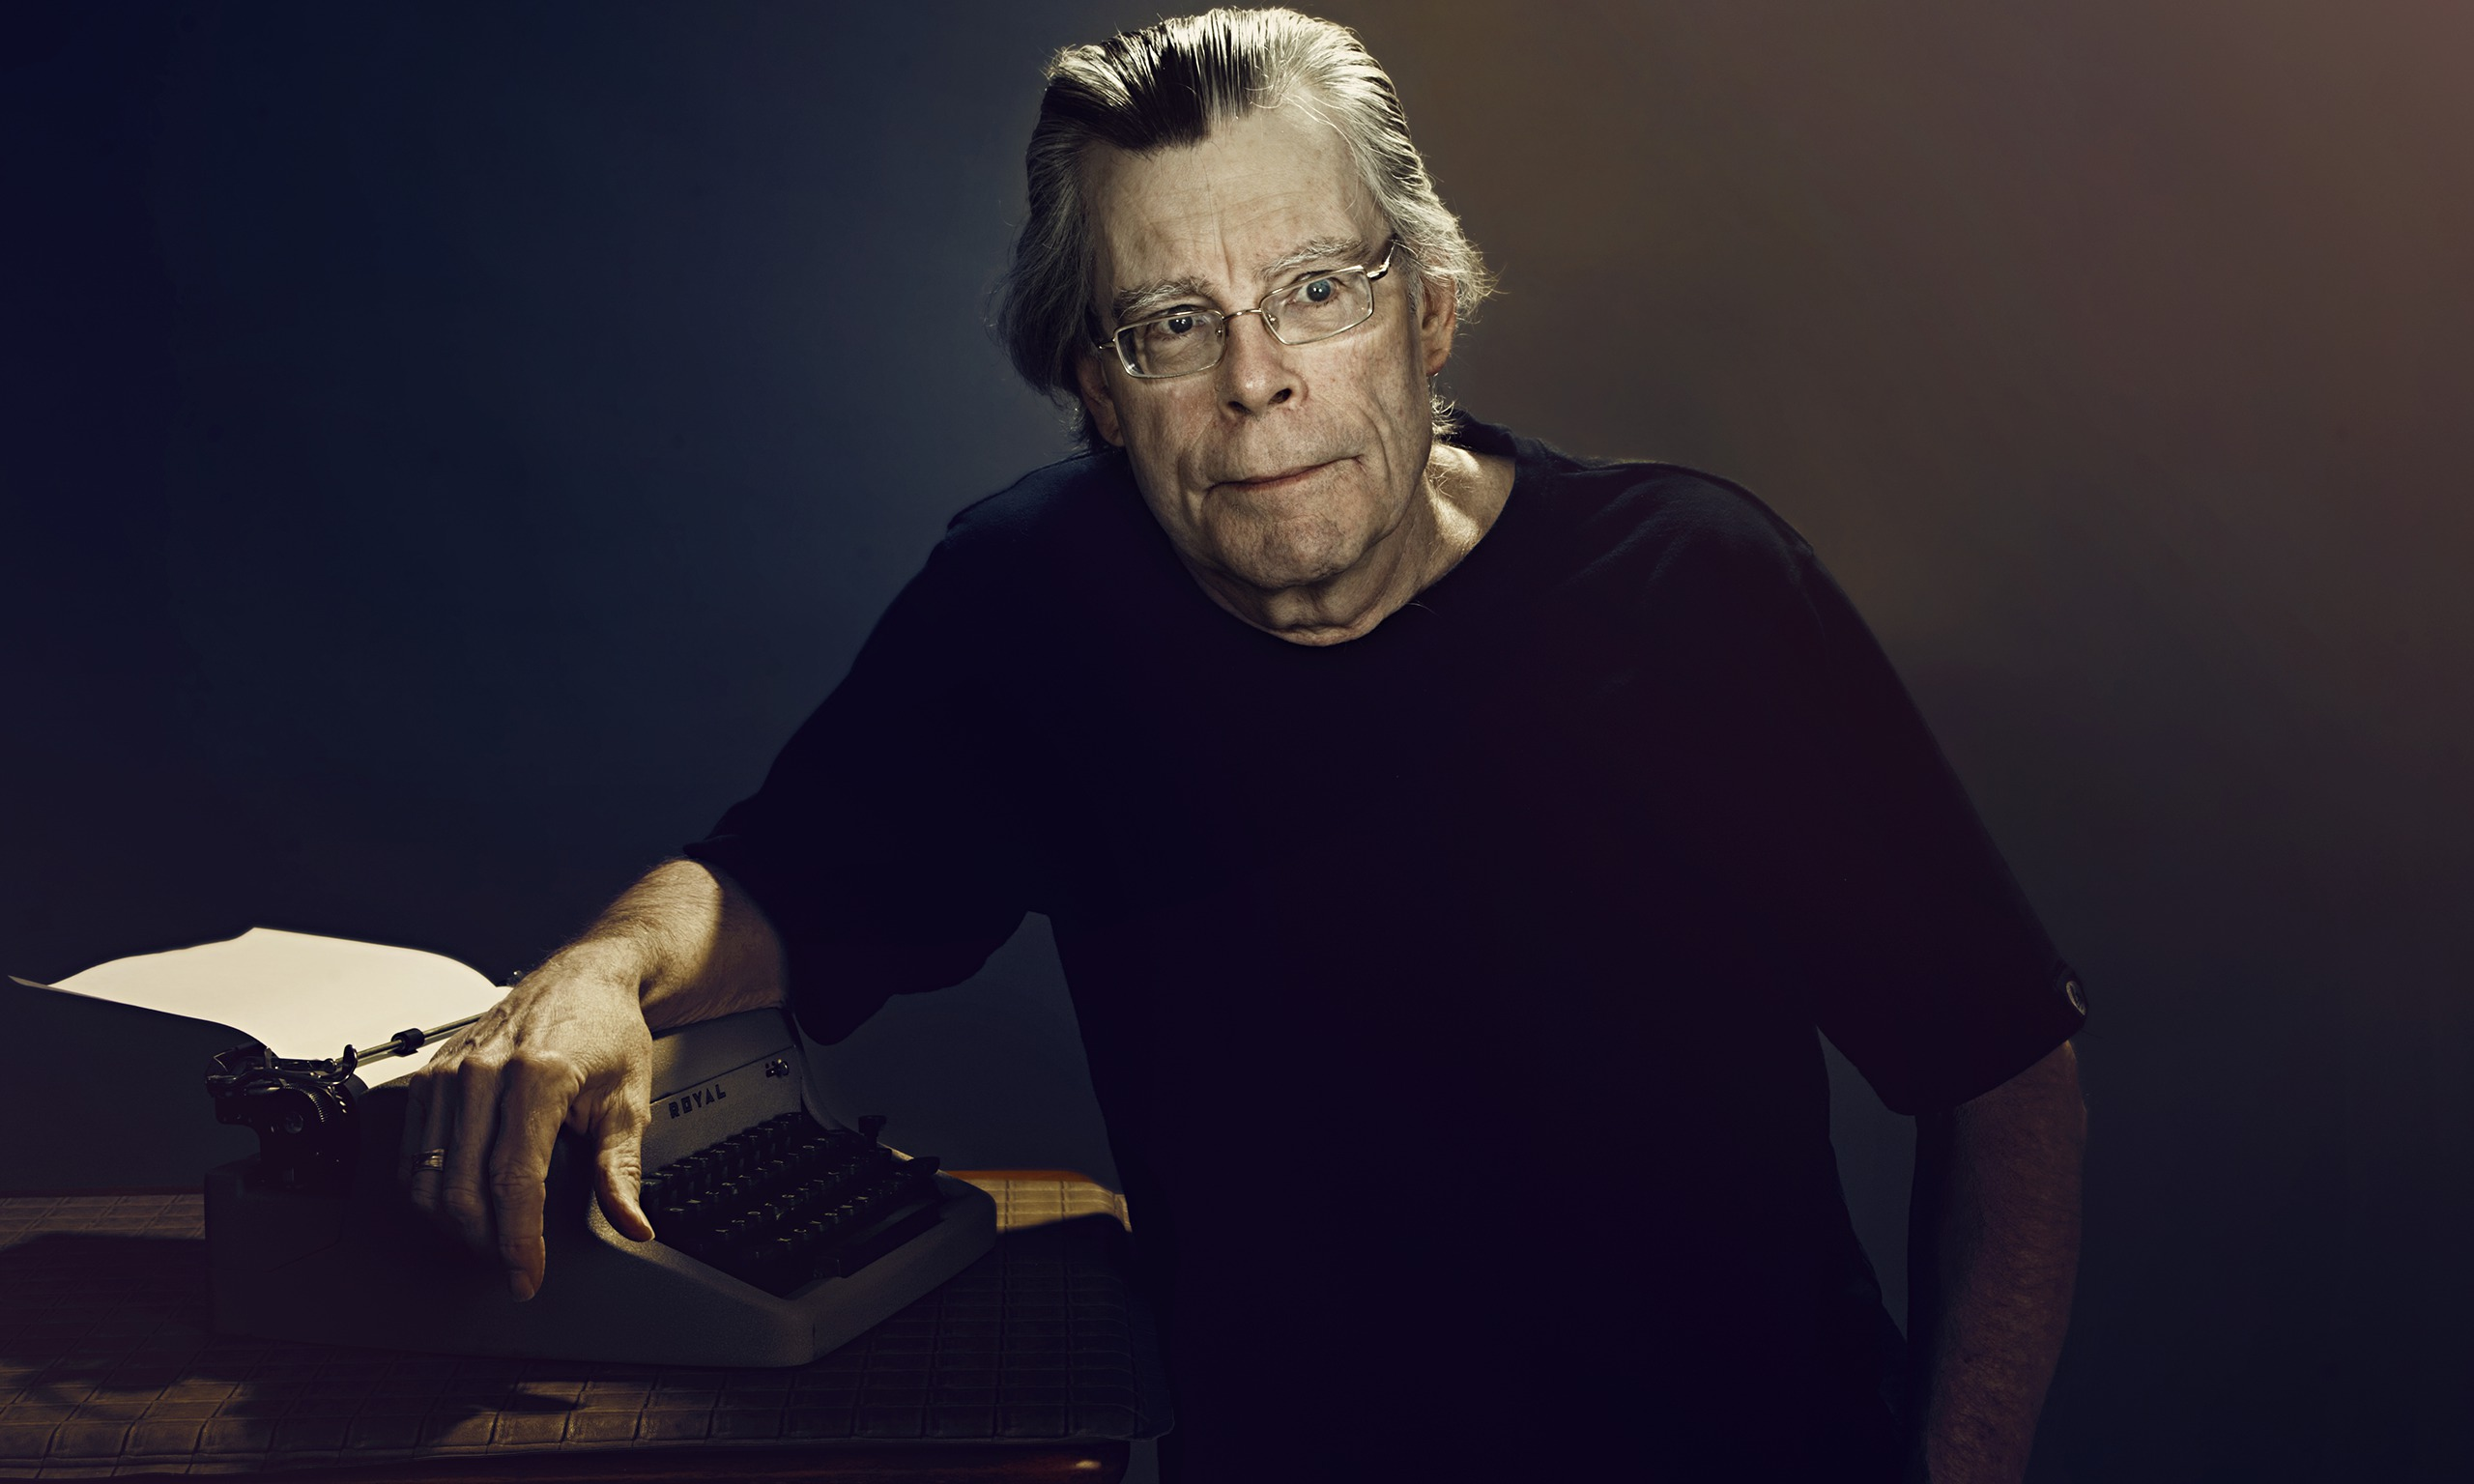 stephan king Description: stephen edwin king is an american author of contemporary horror, supernatural fiction, suspense, science fiction, and fantasy his books have sold more than 350 million copies, many of which have been adapted into feature films, miniseries, television shows, and comic books.